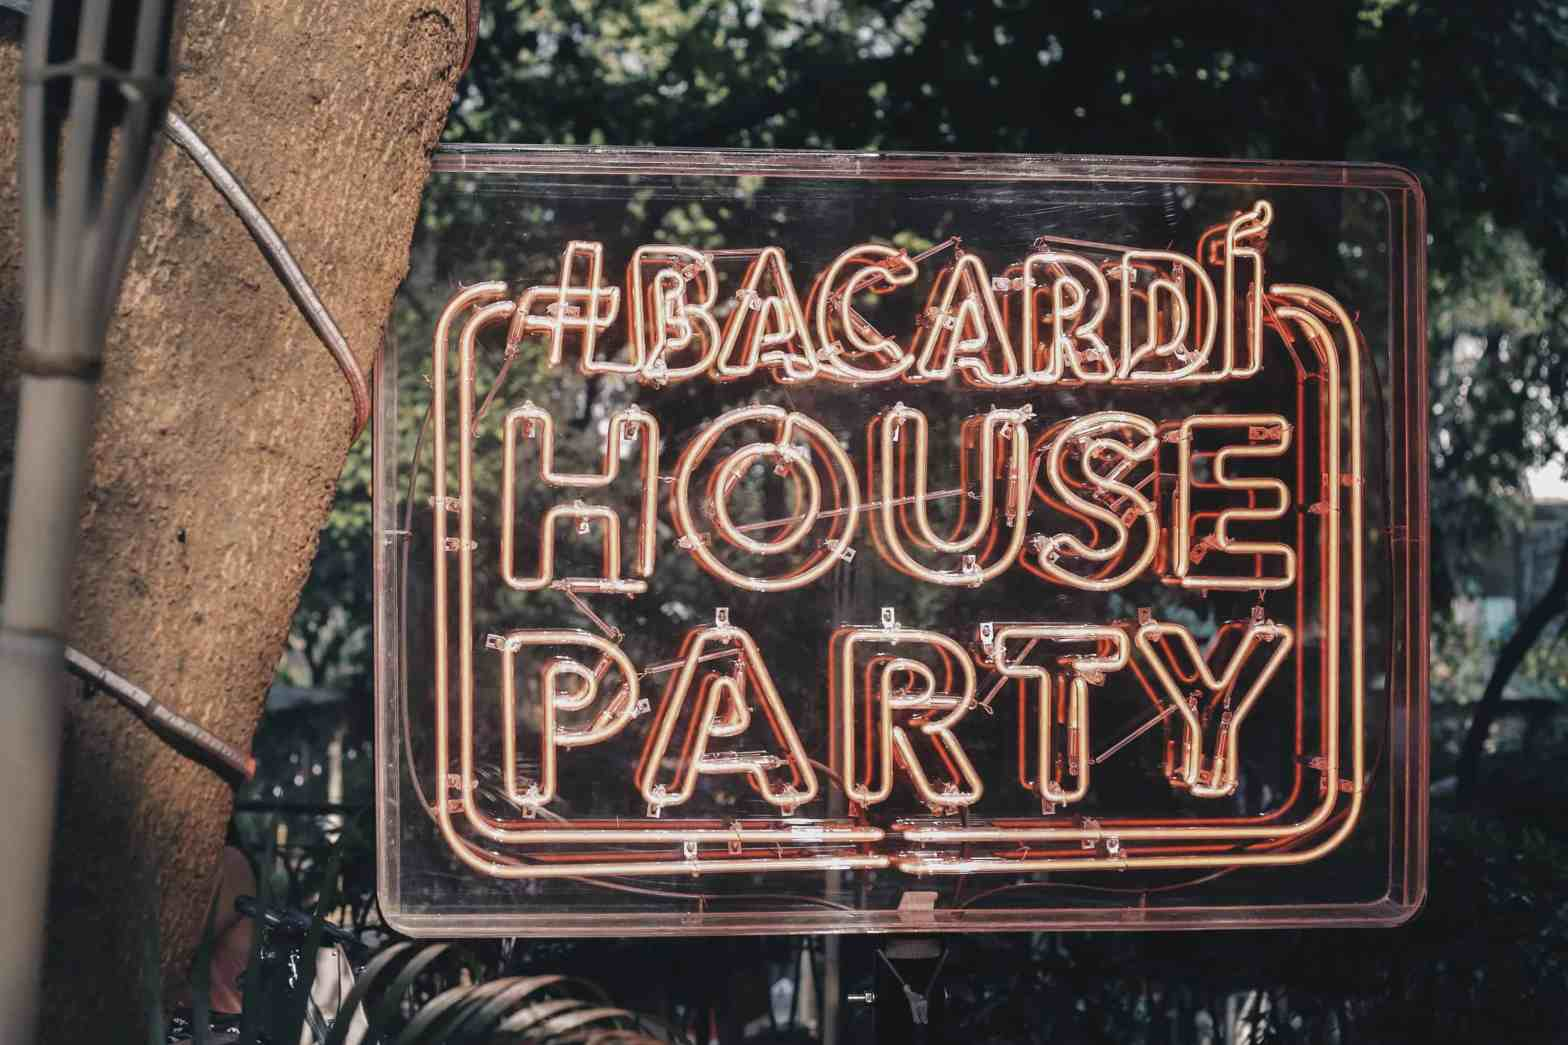 Bacardi House Party Neon sign